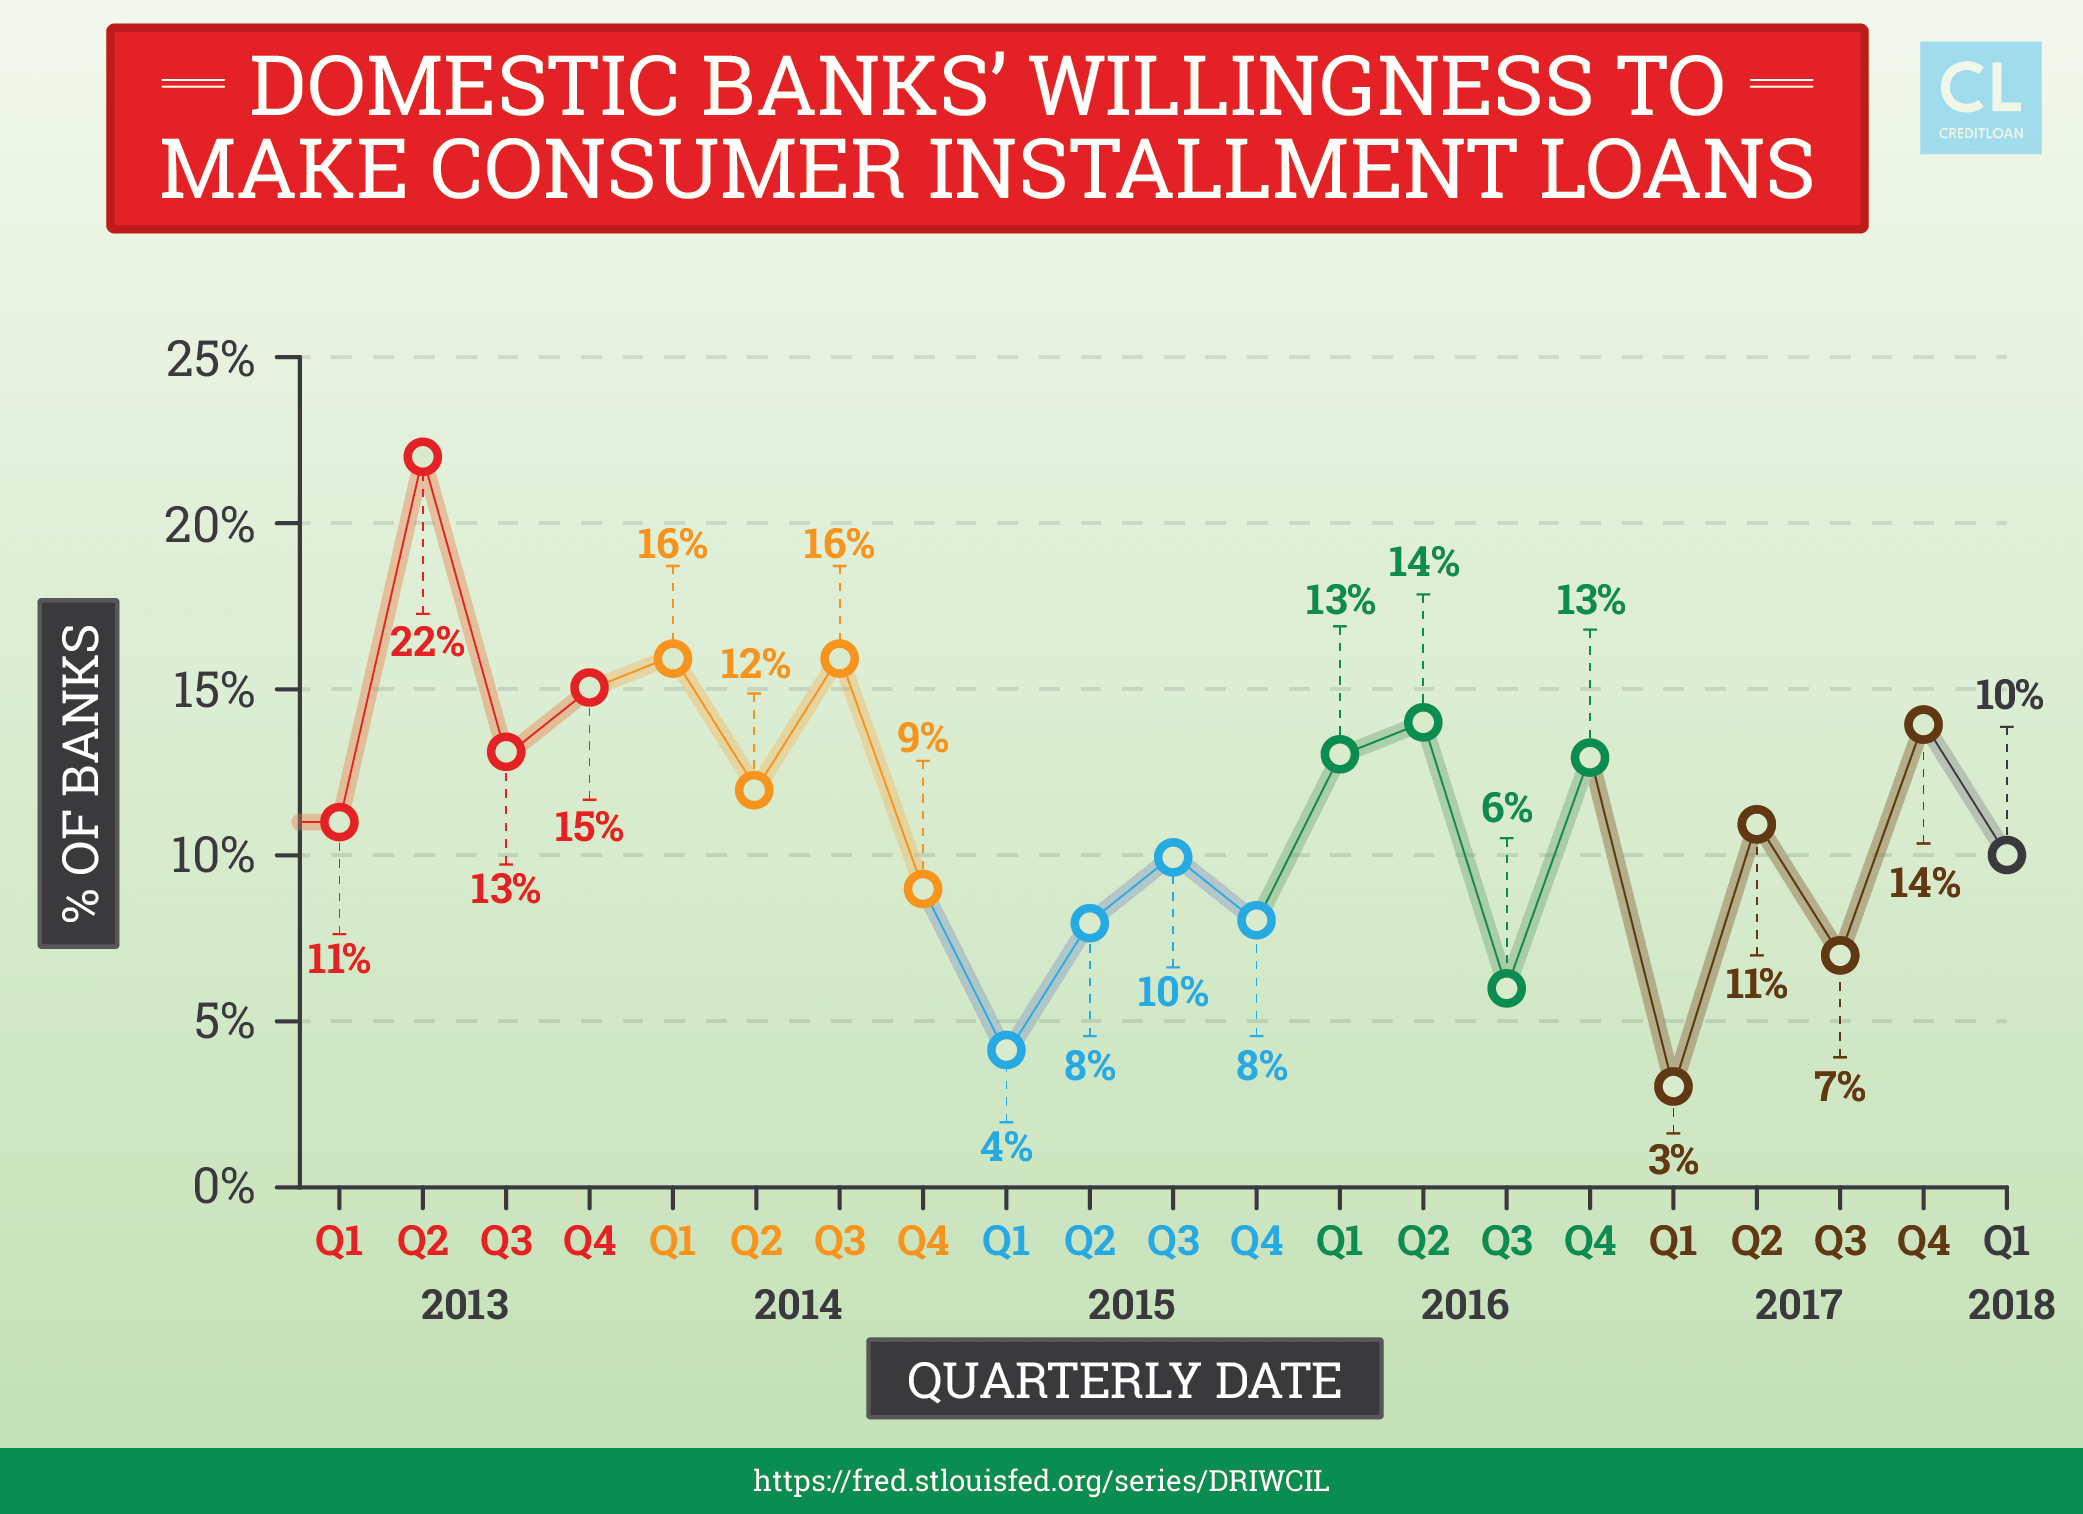 Domestic Banks' Willingness to Make Consumer Installment Loans from 2013-2018